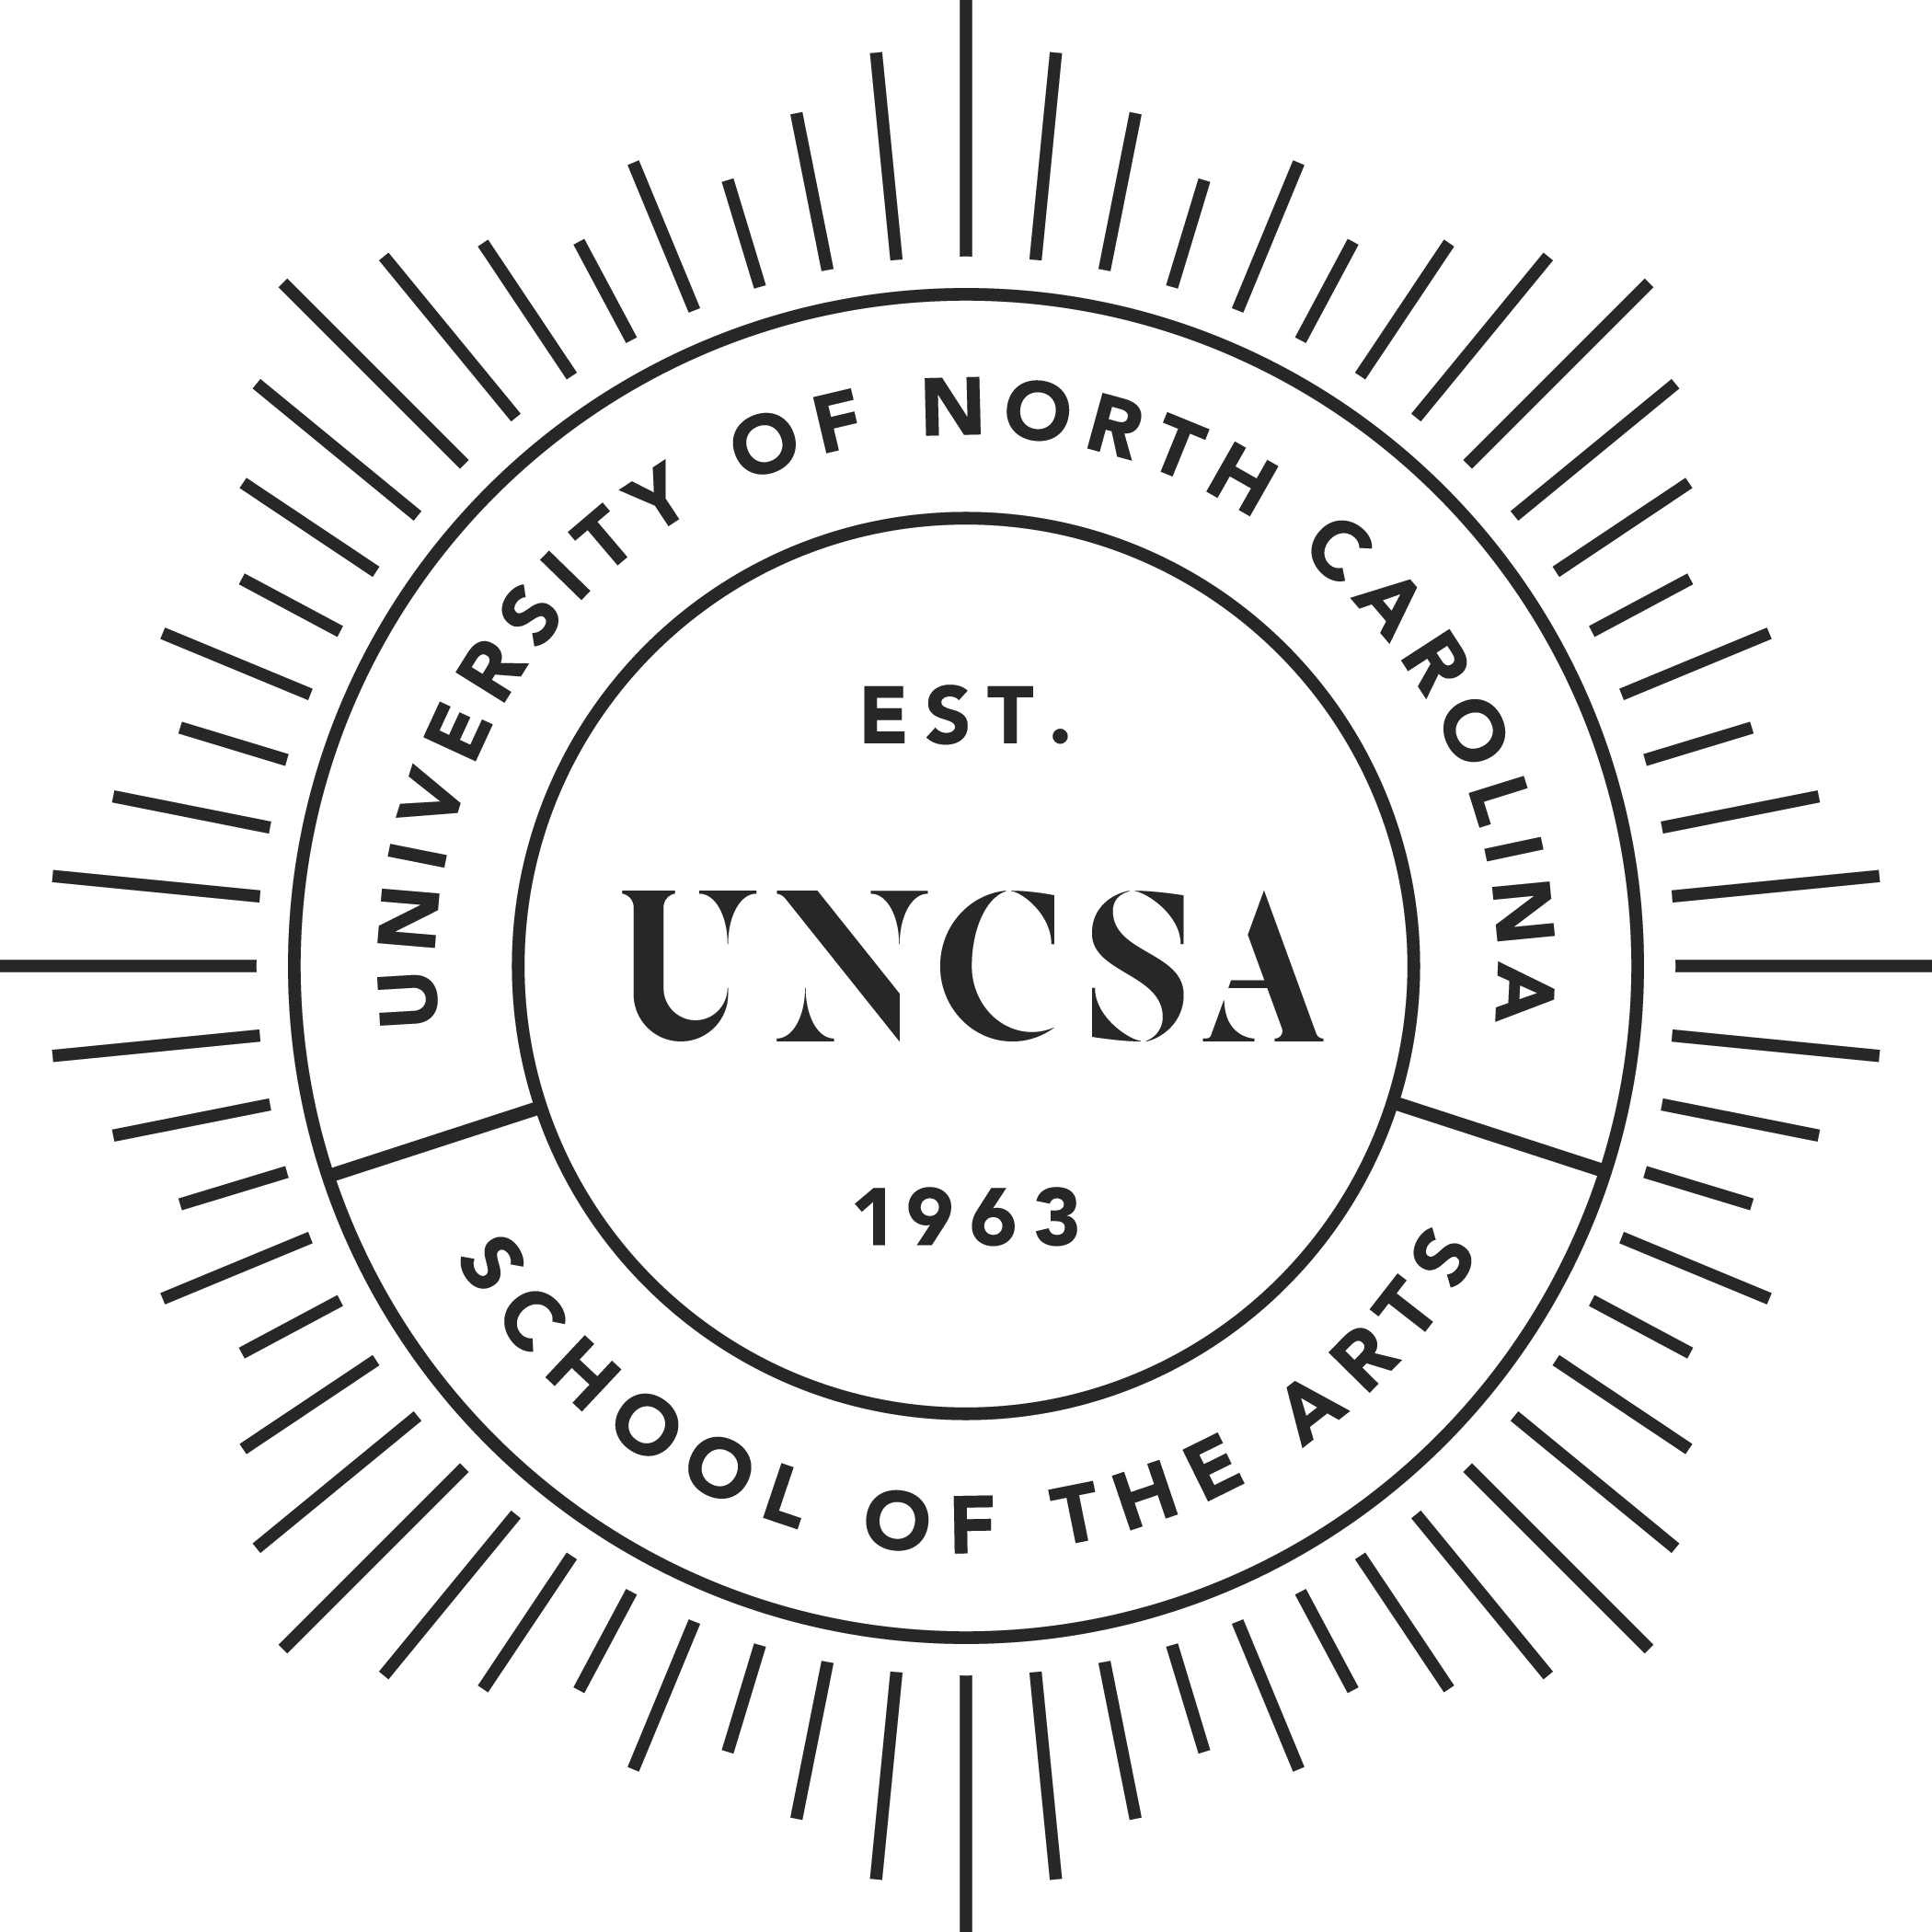 UNCSA_Official_Seal